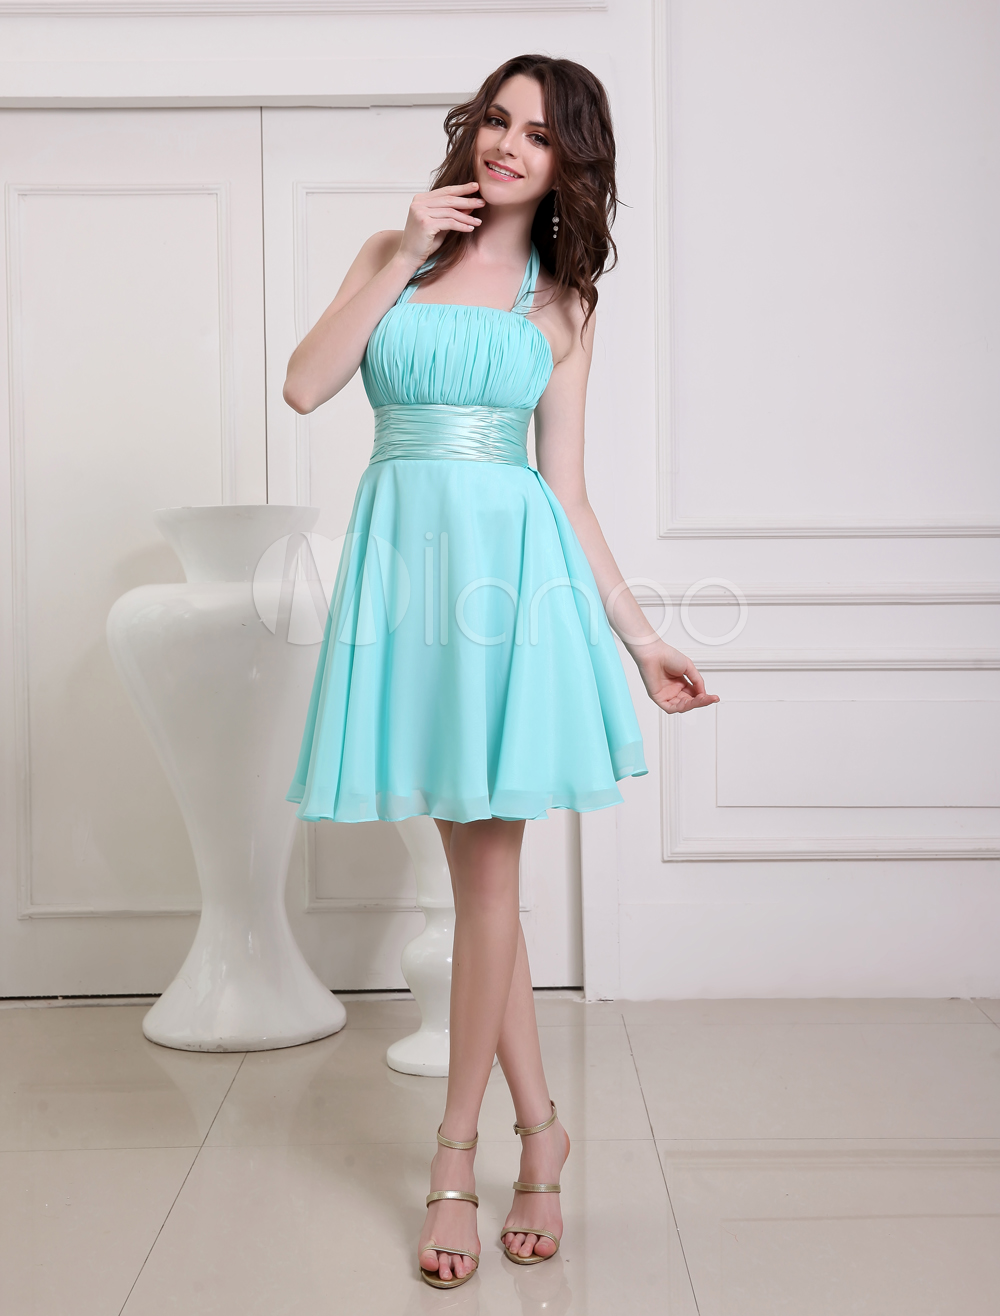 Ocean Blue Bridesmaid Dresses Image collections - Braidsmaid Dress ...